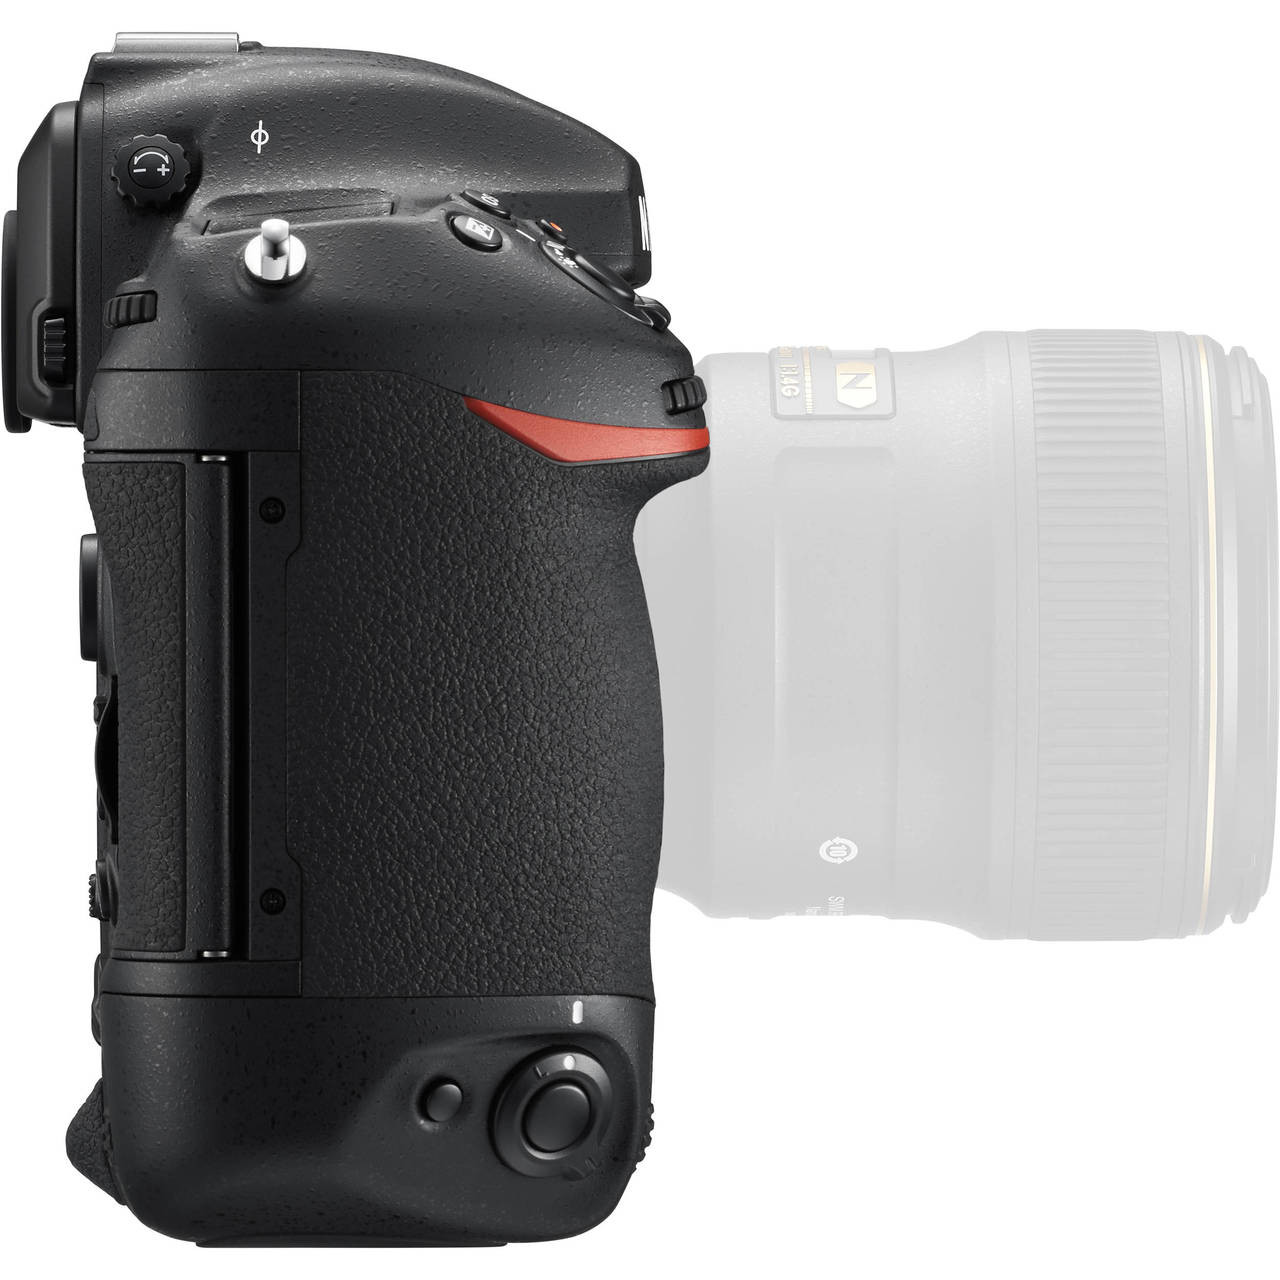 Nikon D5 Body with Dual CF Slots Right Side